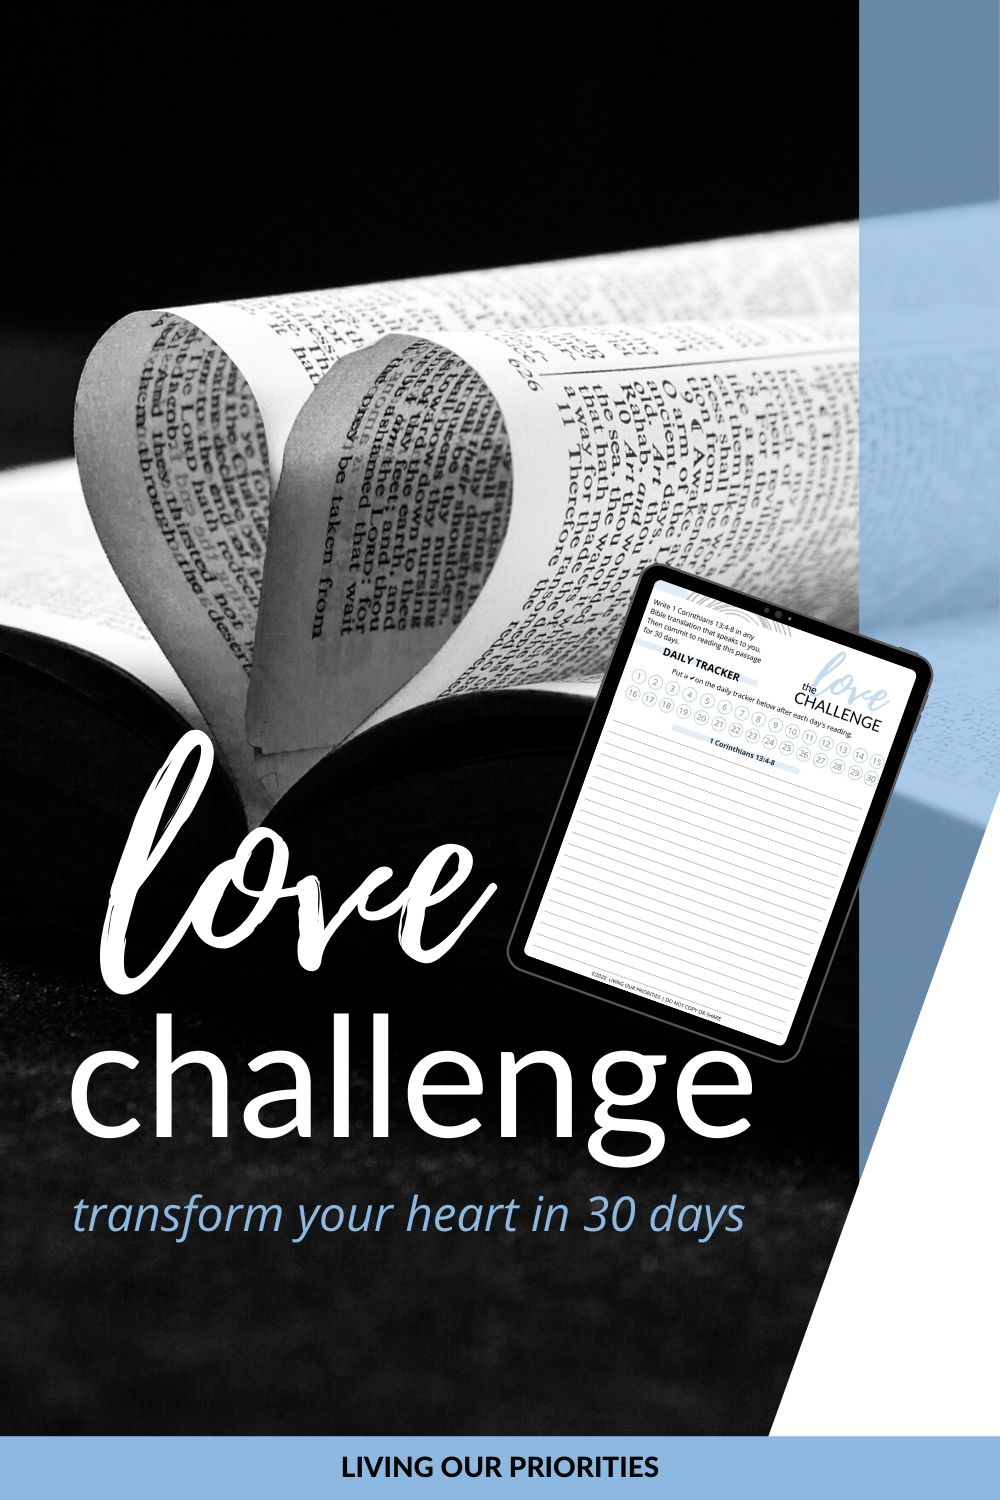 Do you want to improve your relationship in 30 days? Take the 30-Day Love Challenge! FREE PRINTABLE 30-Day Tracker Included! #LivingOurPriorities #30dayovechallenge #freeprintable